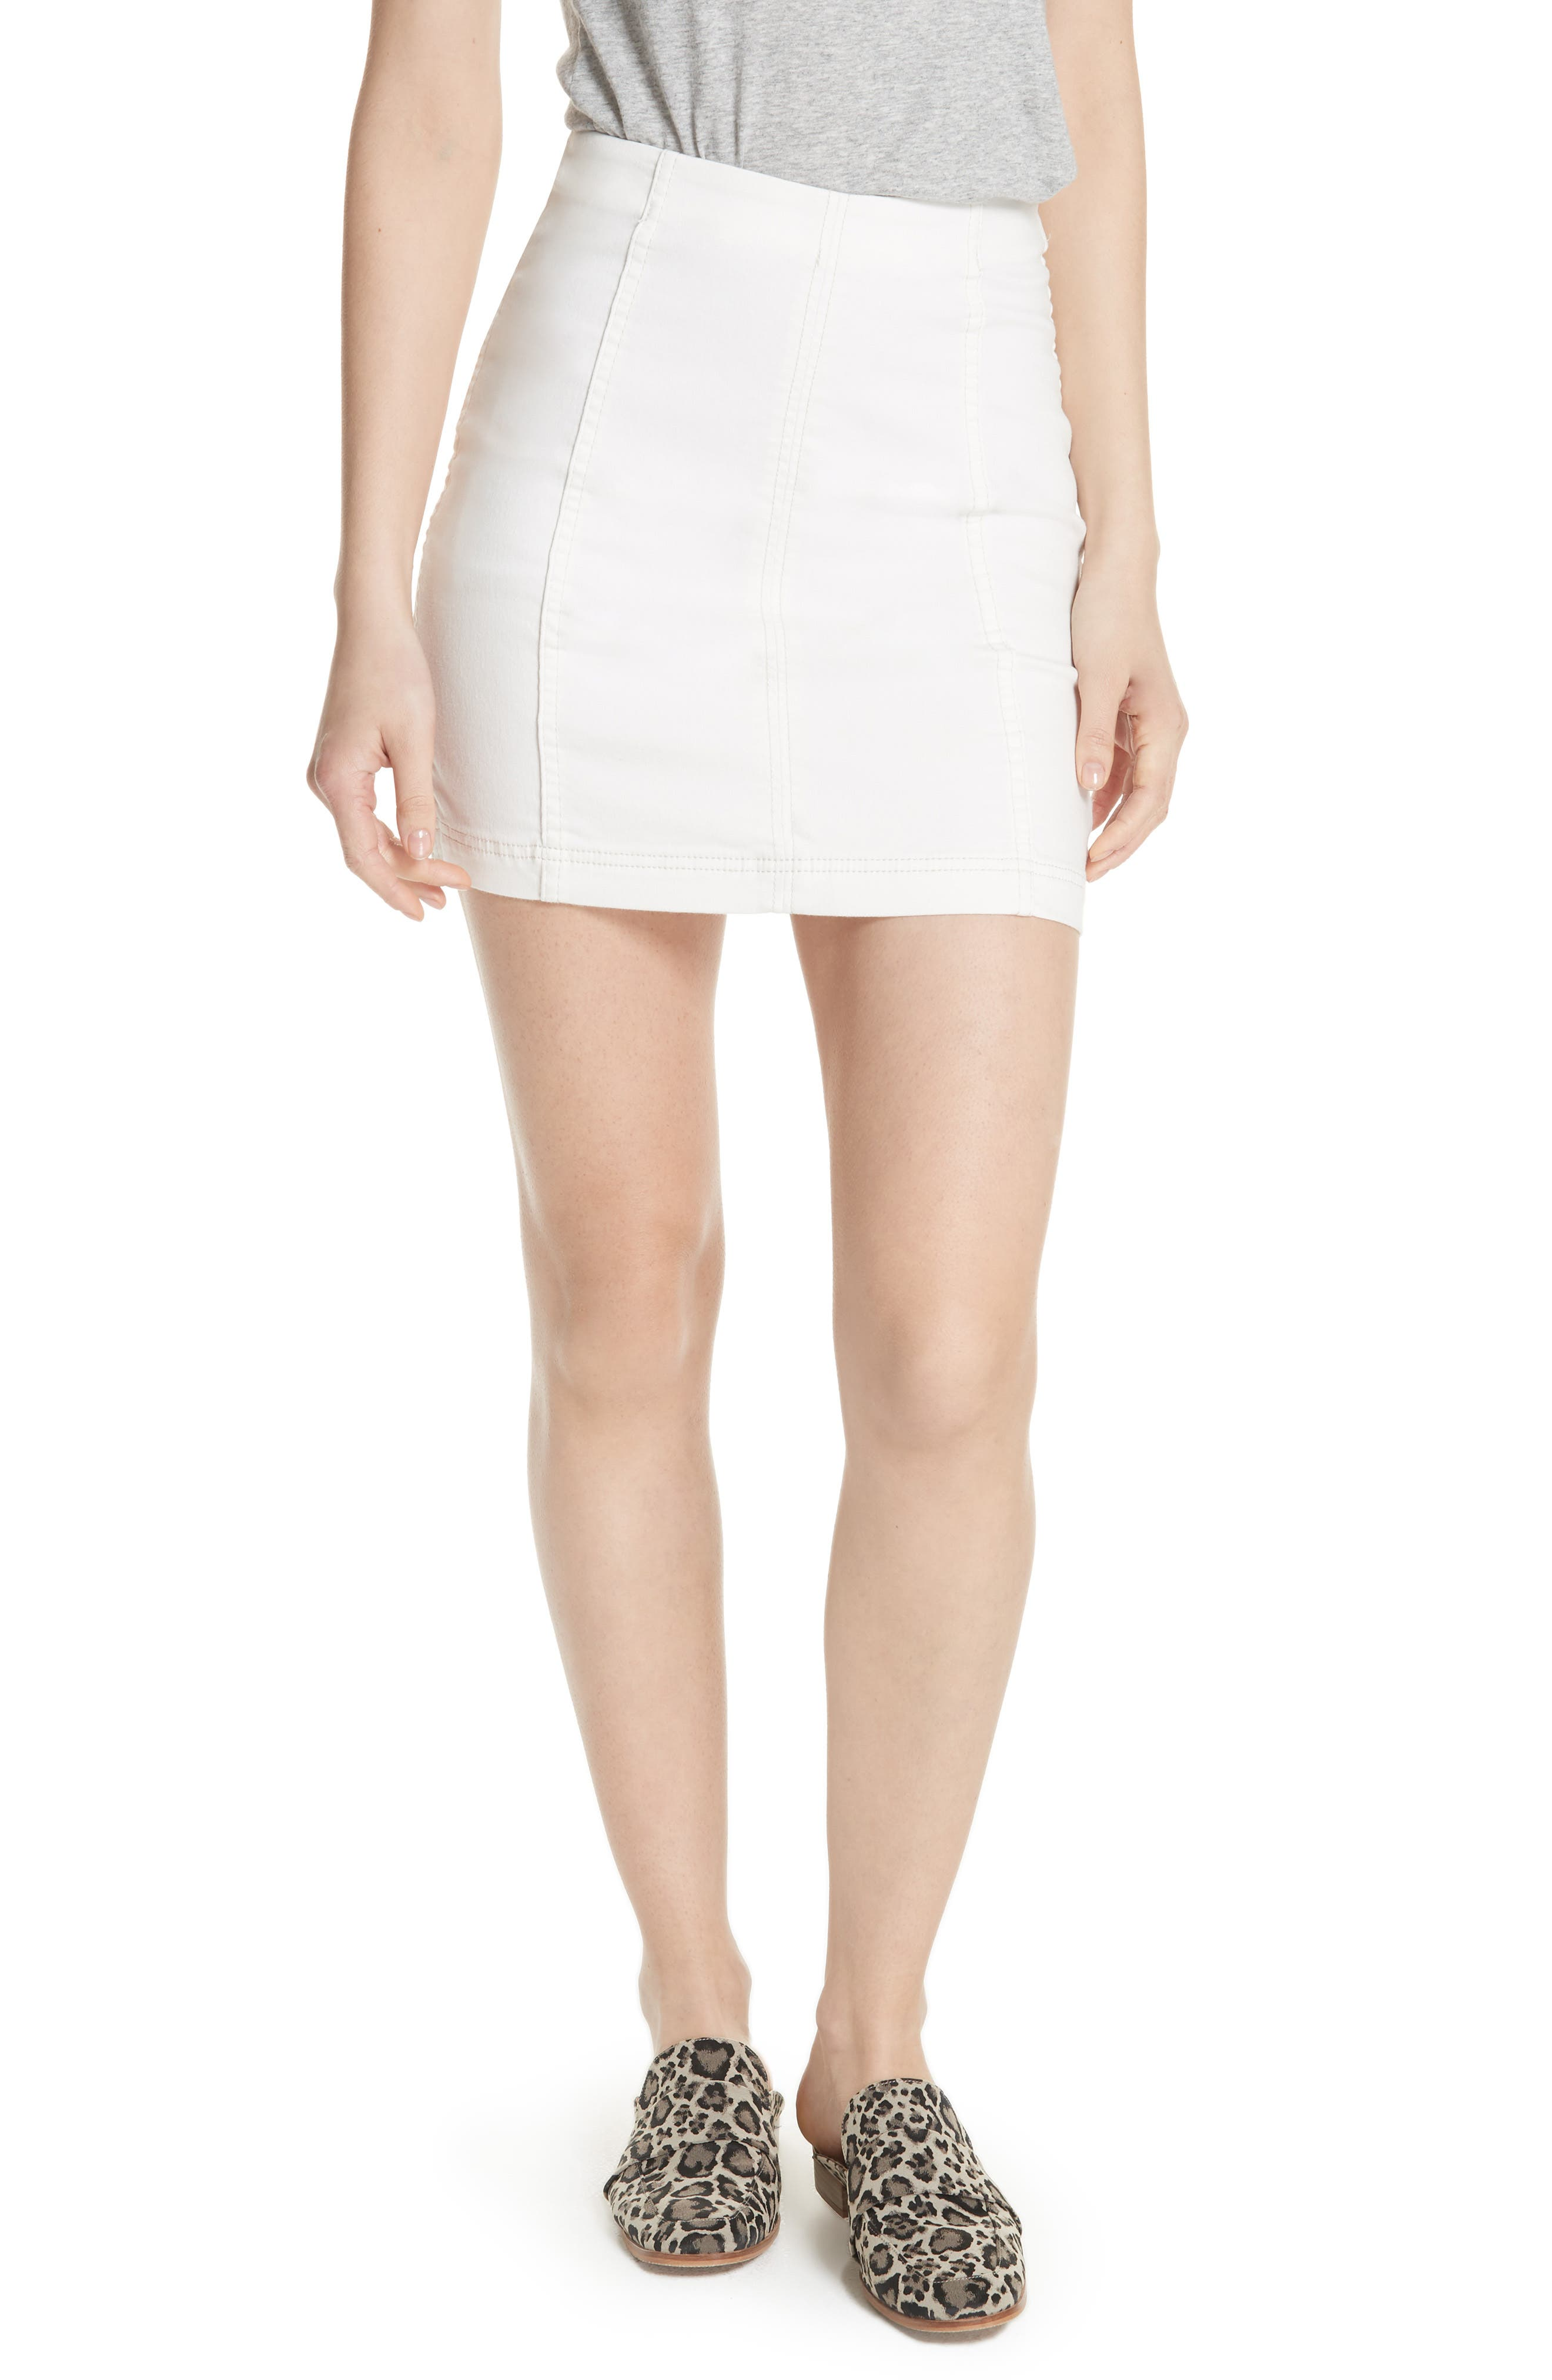 FREE PEOPLE, We the Free by Free People Modern Denim Skirt, Main thumbnail 1, color, 100